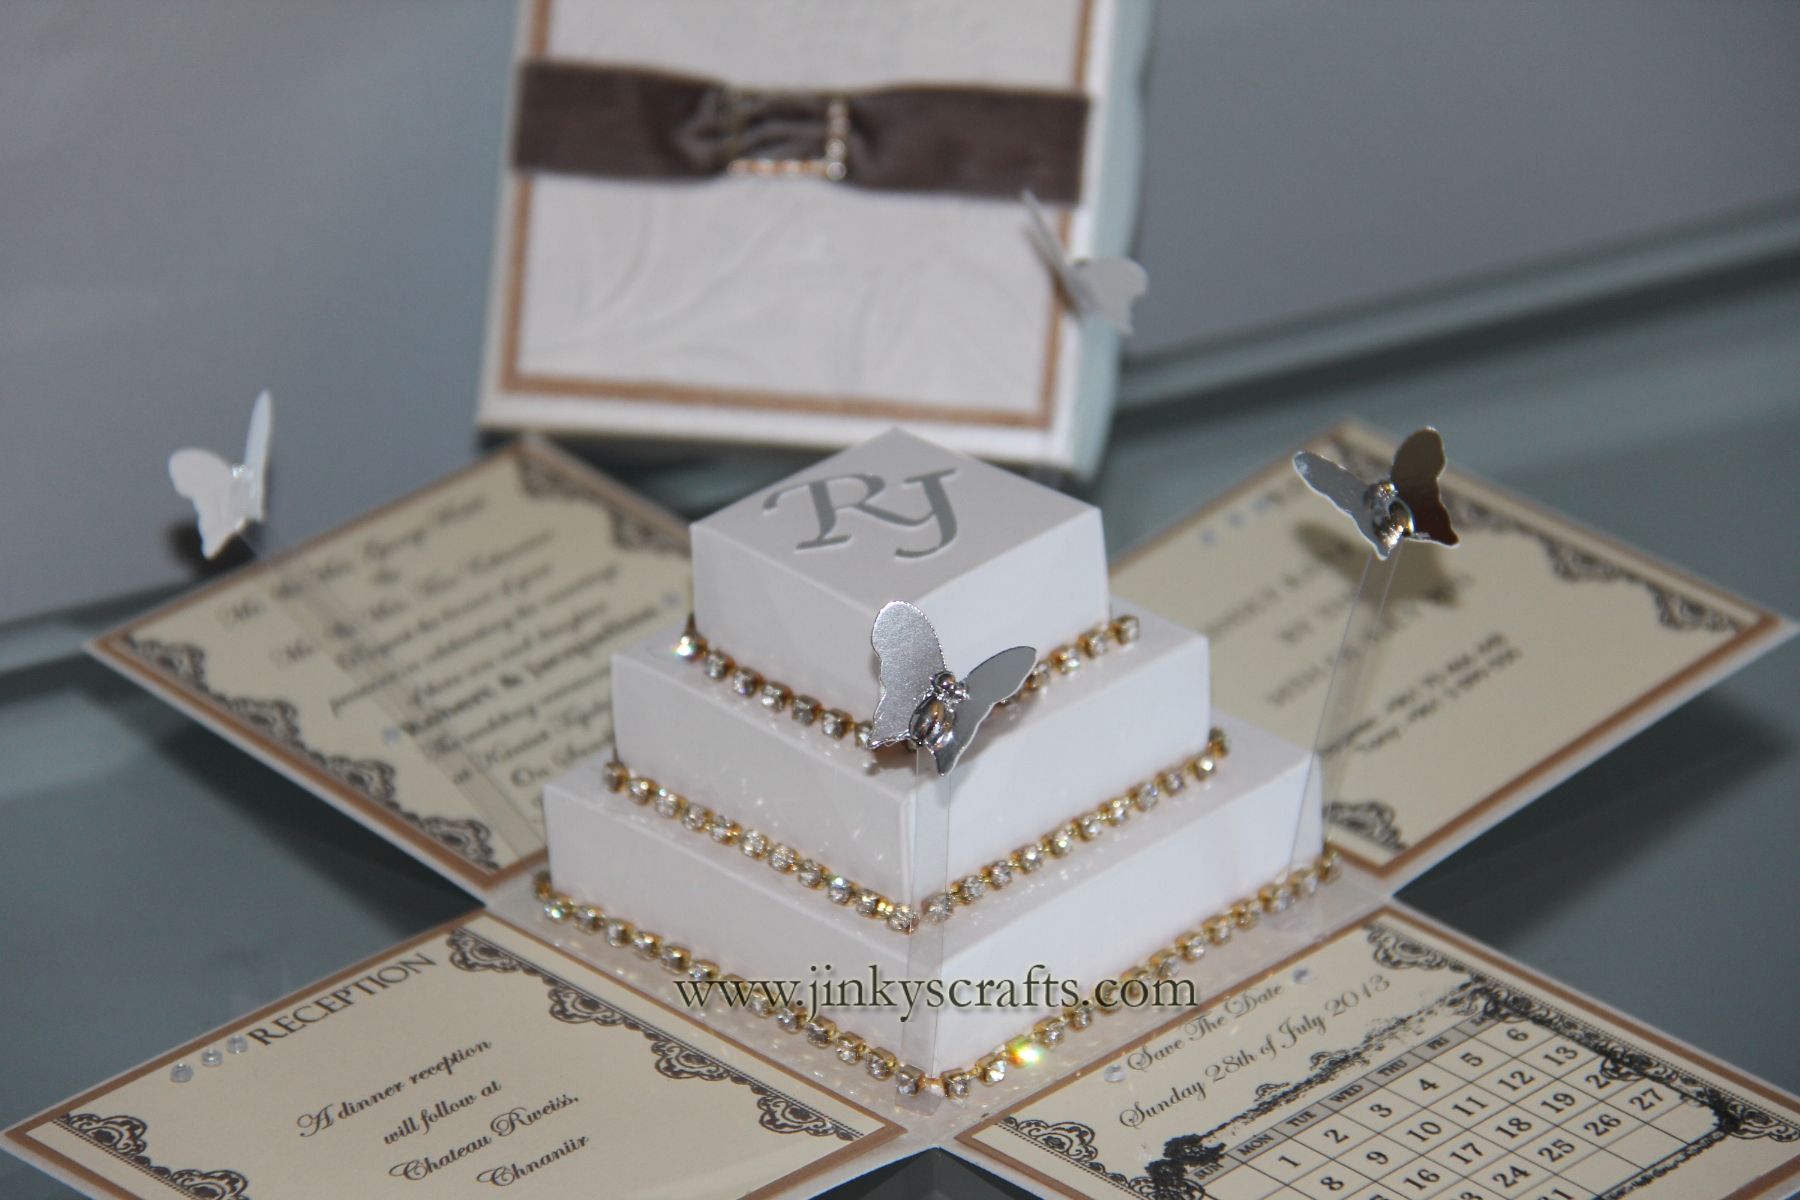 jinkyscrafts wedding box Lace Exploding Box Wedding Invitations w Square Cake